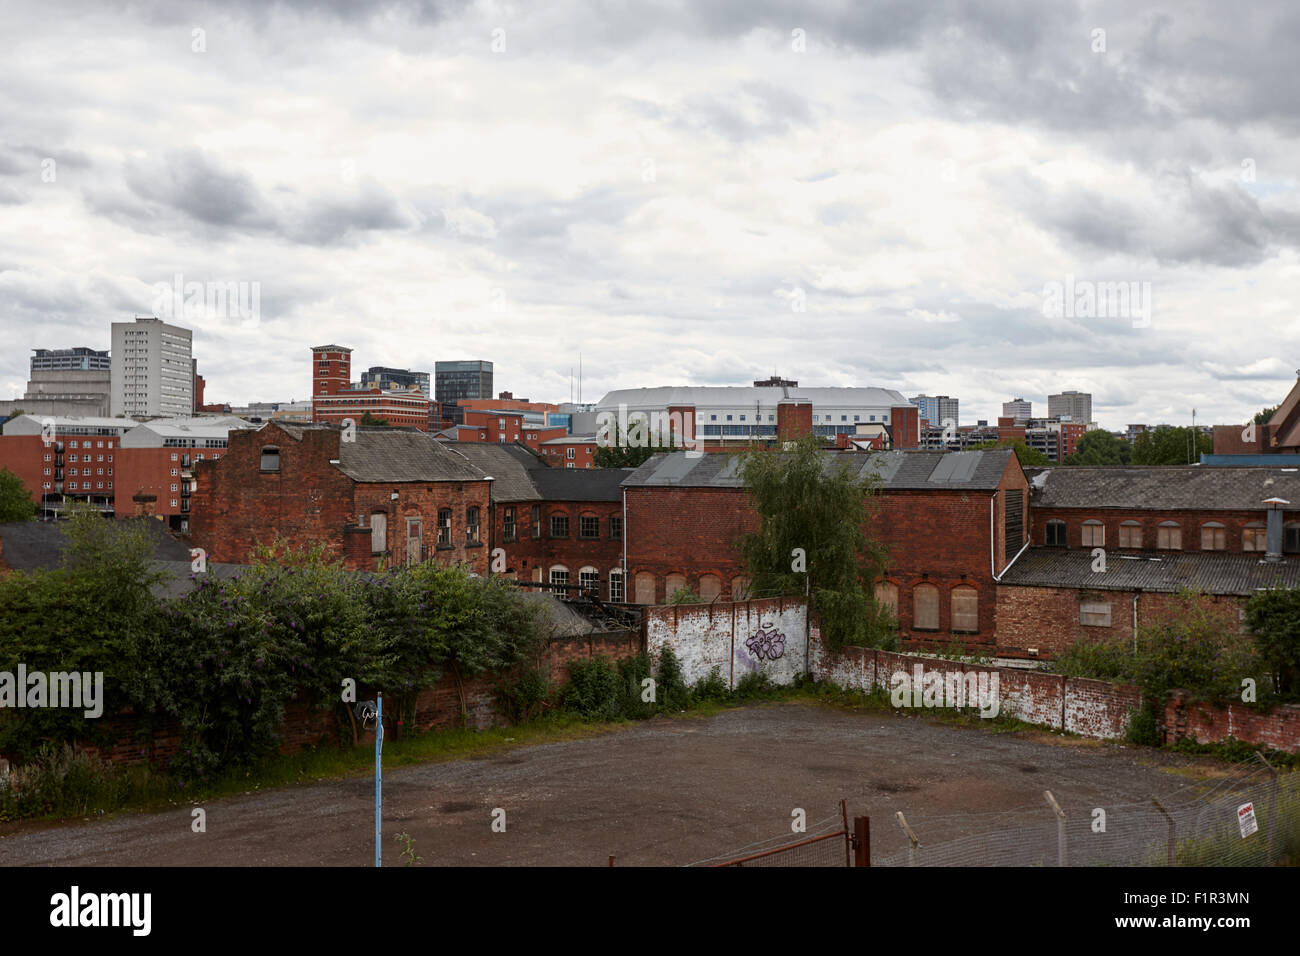 view of Birmingham city centre across various brown field and derelict old buildings UK - Stock Image